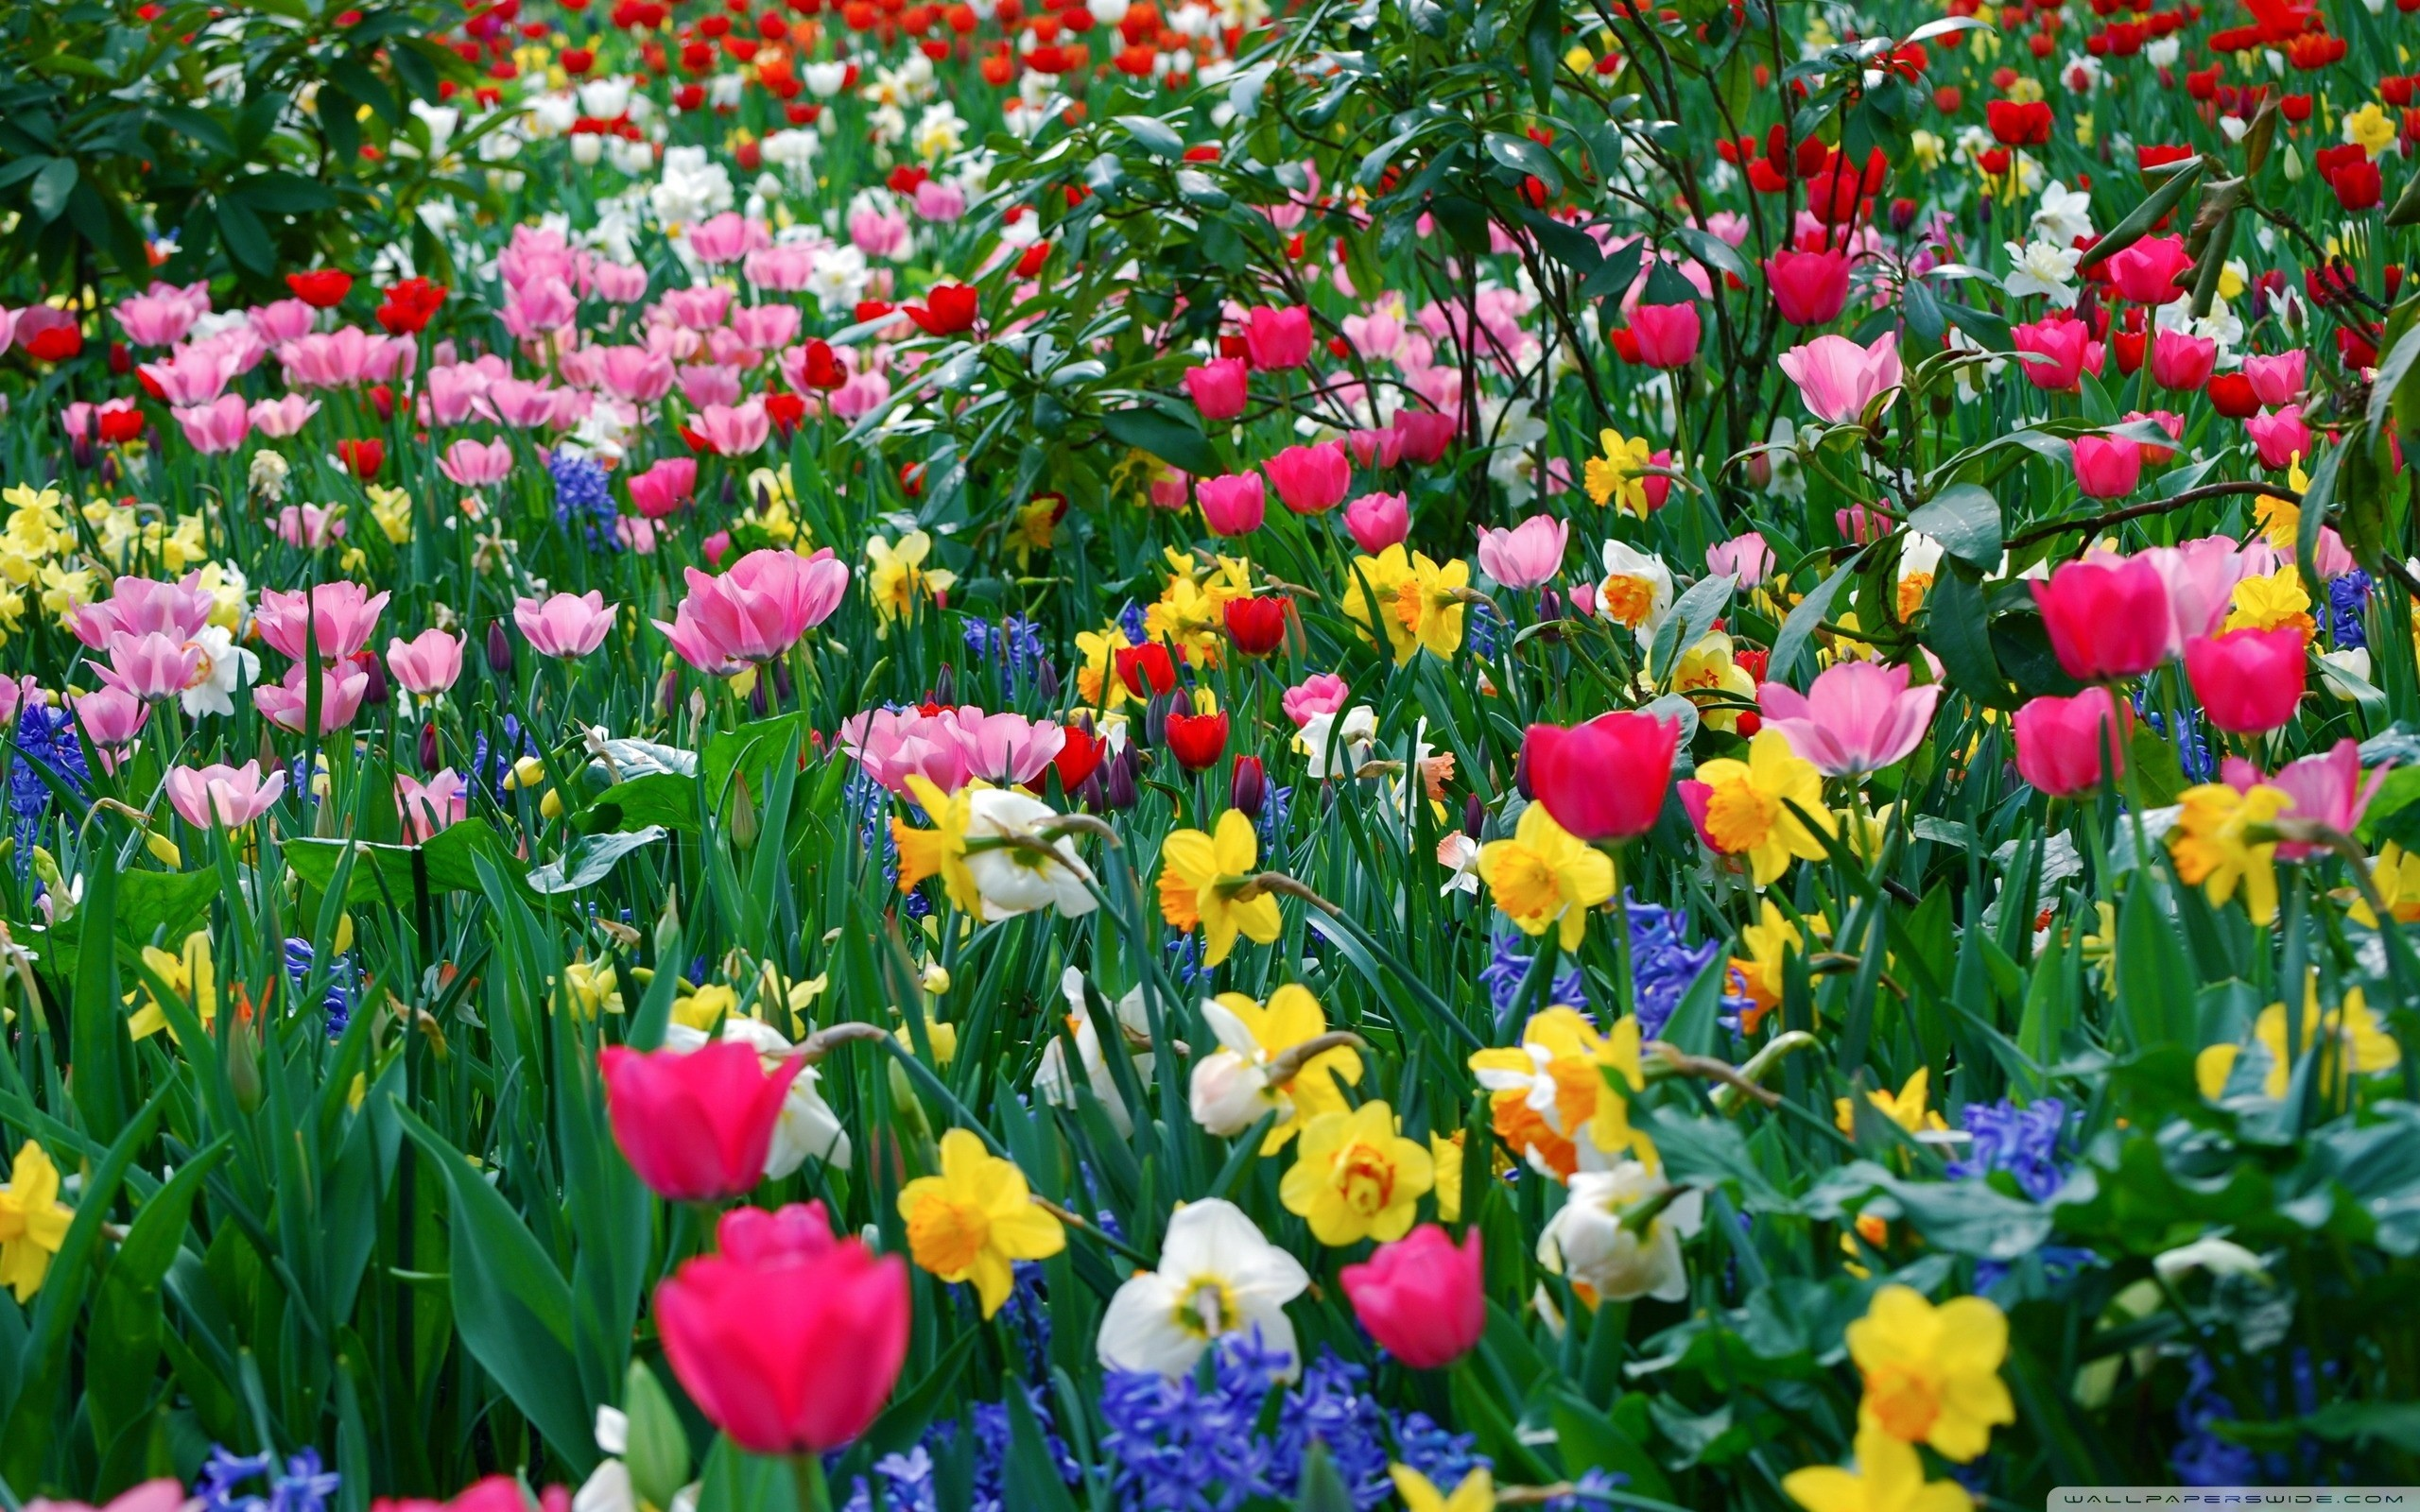 April showers bring May flowers, or so goes the eternal promise of  springtime. It